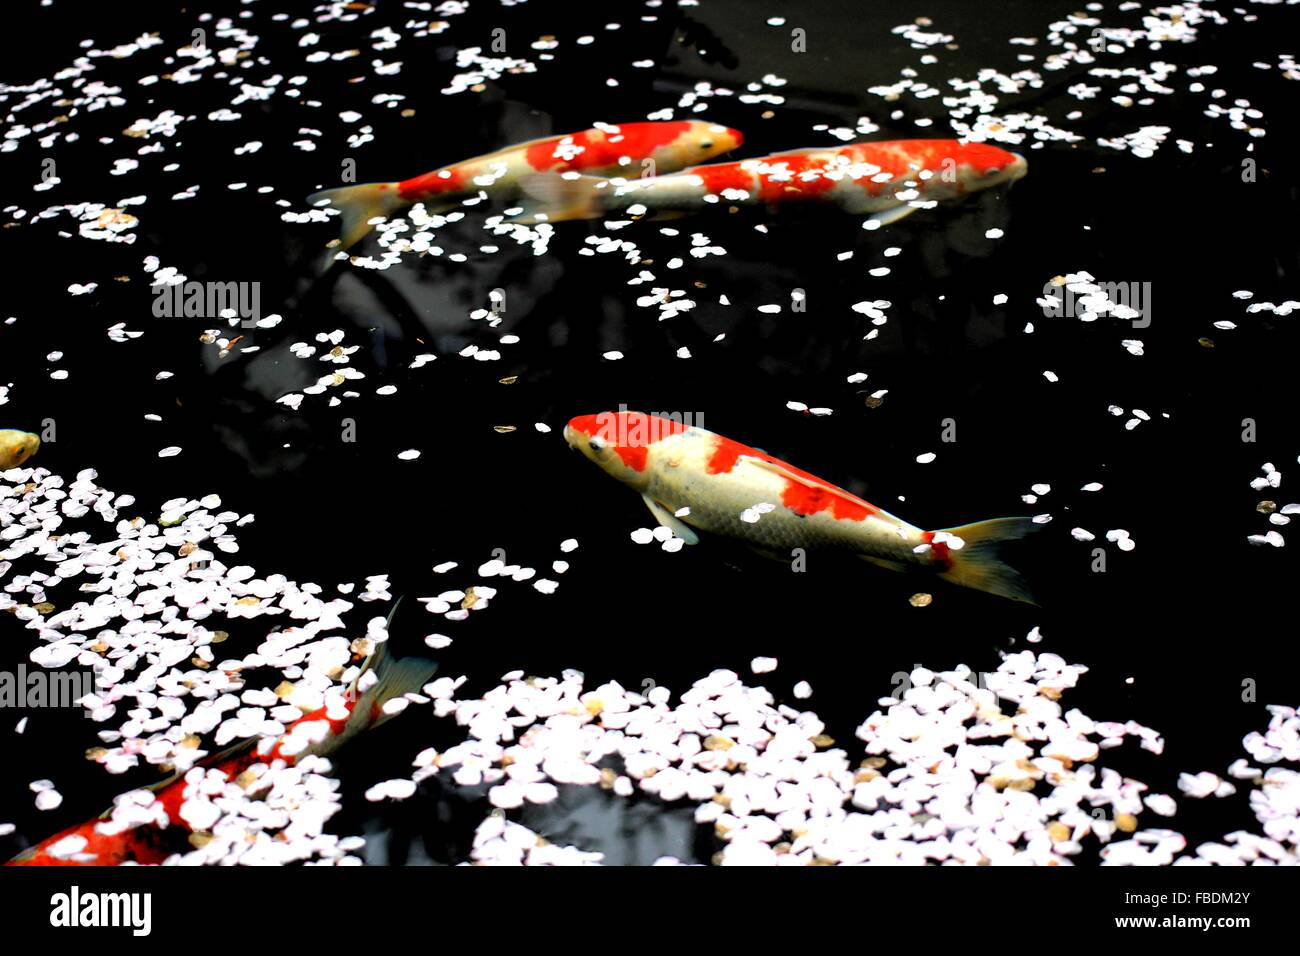 Blossom Petals And Fish By Water Surface - Stock Image